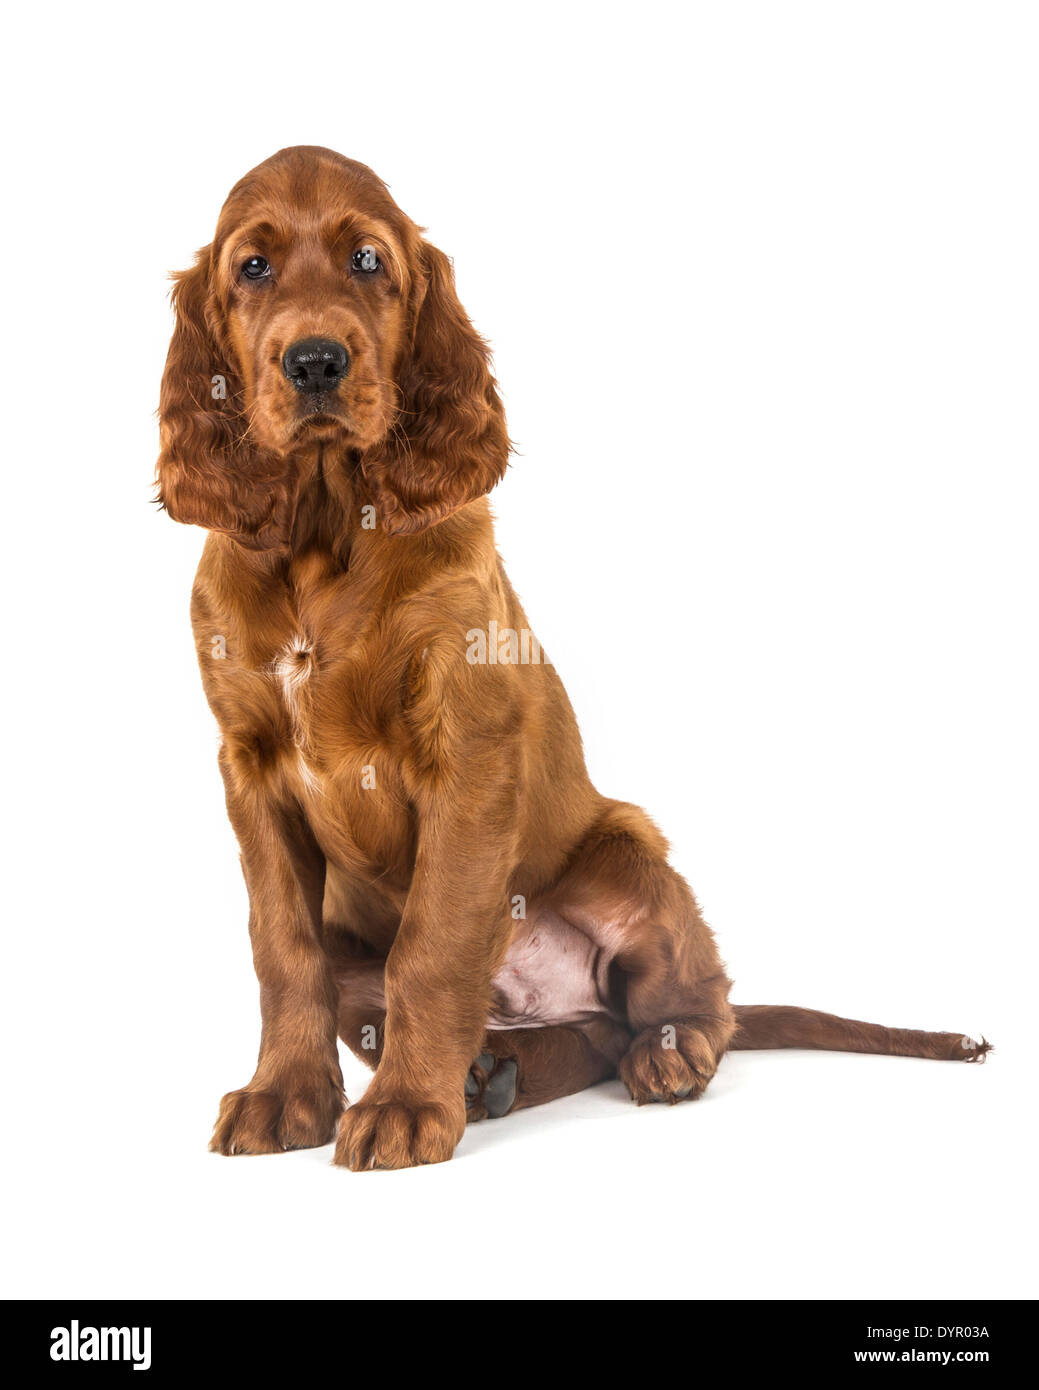 Two month old Irish Setter dog Stock Photo